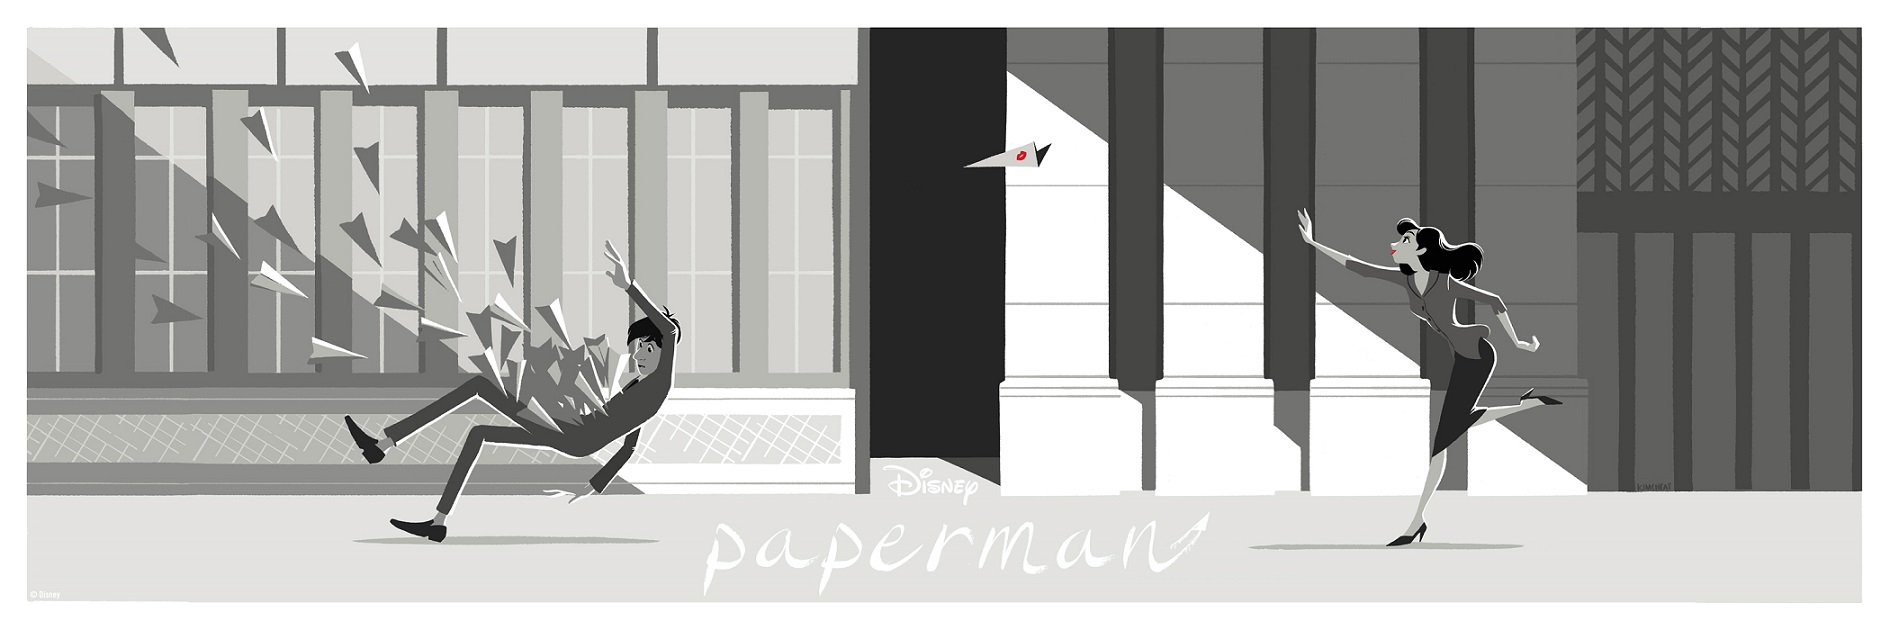 /FilmCool Stuff: Jisoo Kim's 'Paperman' Print From Cyclops Print WorksD23 Expo 2015 Prints: Star Wars, Beauty and the Beast, Inside Out , Jungle Cruise, Fantasia, Feast, Paperman and More'Paperman' Director Leaves DisneyLOL: 'Paperman Threesome', An Unedited Crude Parody Ending of Disney's 'Paperman'LOL: 'Paperman' Producer Kicked Out Of Oscars For Throwing Paper AirplanesBen Affleck Takes DGA Prize, 'Wreck-It Ralph' Wrecks the AnniesWatch Disney's Hand-Drawn / CG Hybrid Short 'Paperman' in Full/Film Video Blog: Disney's Hand-Drawn/CG Animated Short Film 'Paperman'Check Out Images From 'Paperman', Disney's Much-Hyped 2D ShortEarly Buzz: Disney's Animated Short Film 'Paperman' Plus New High Resolution Concept Art